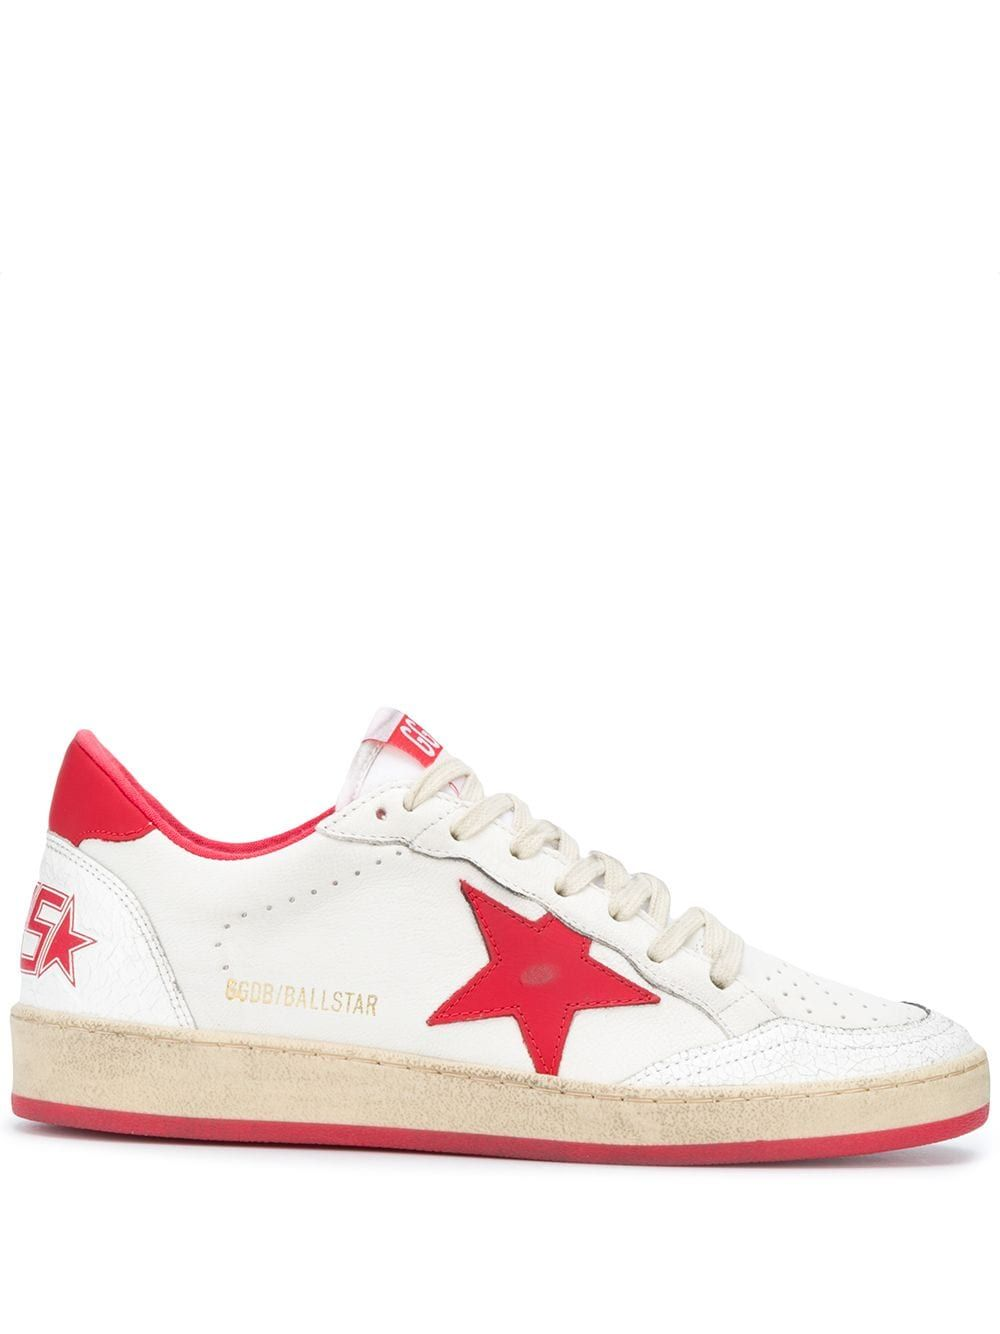 Golden Goose Low tops GOLDEN GOOSE WOMEN'S G36WS592A5 WHITE LEATHER SNEAKERS